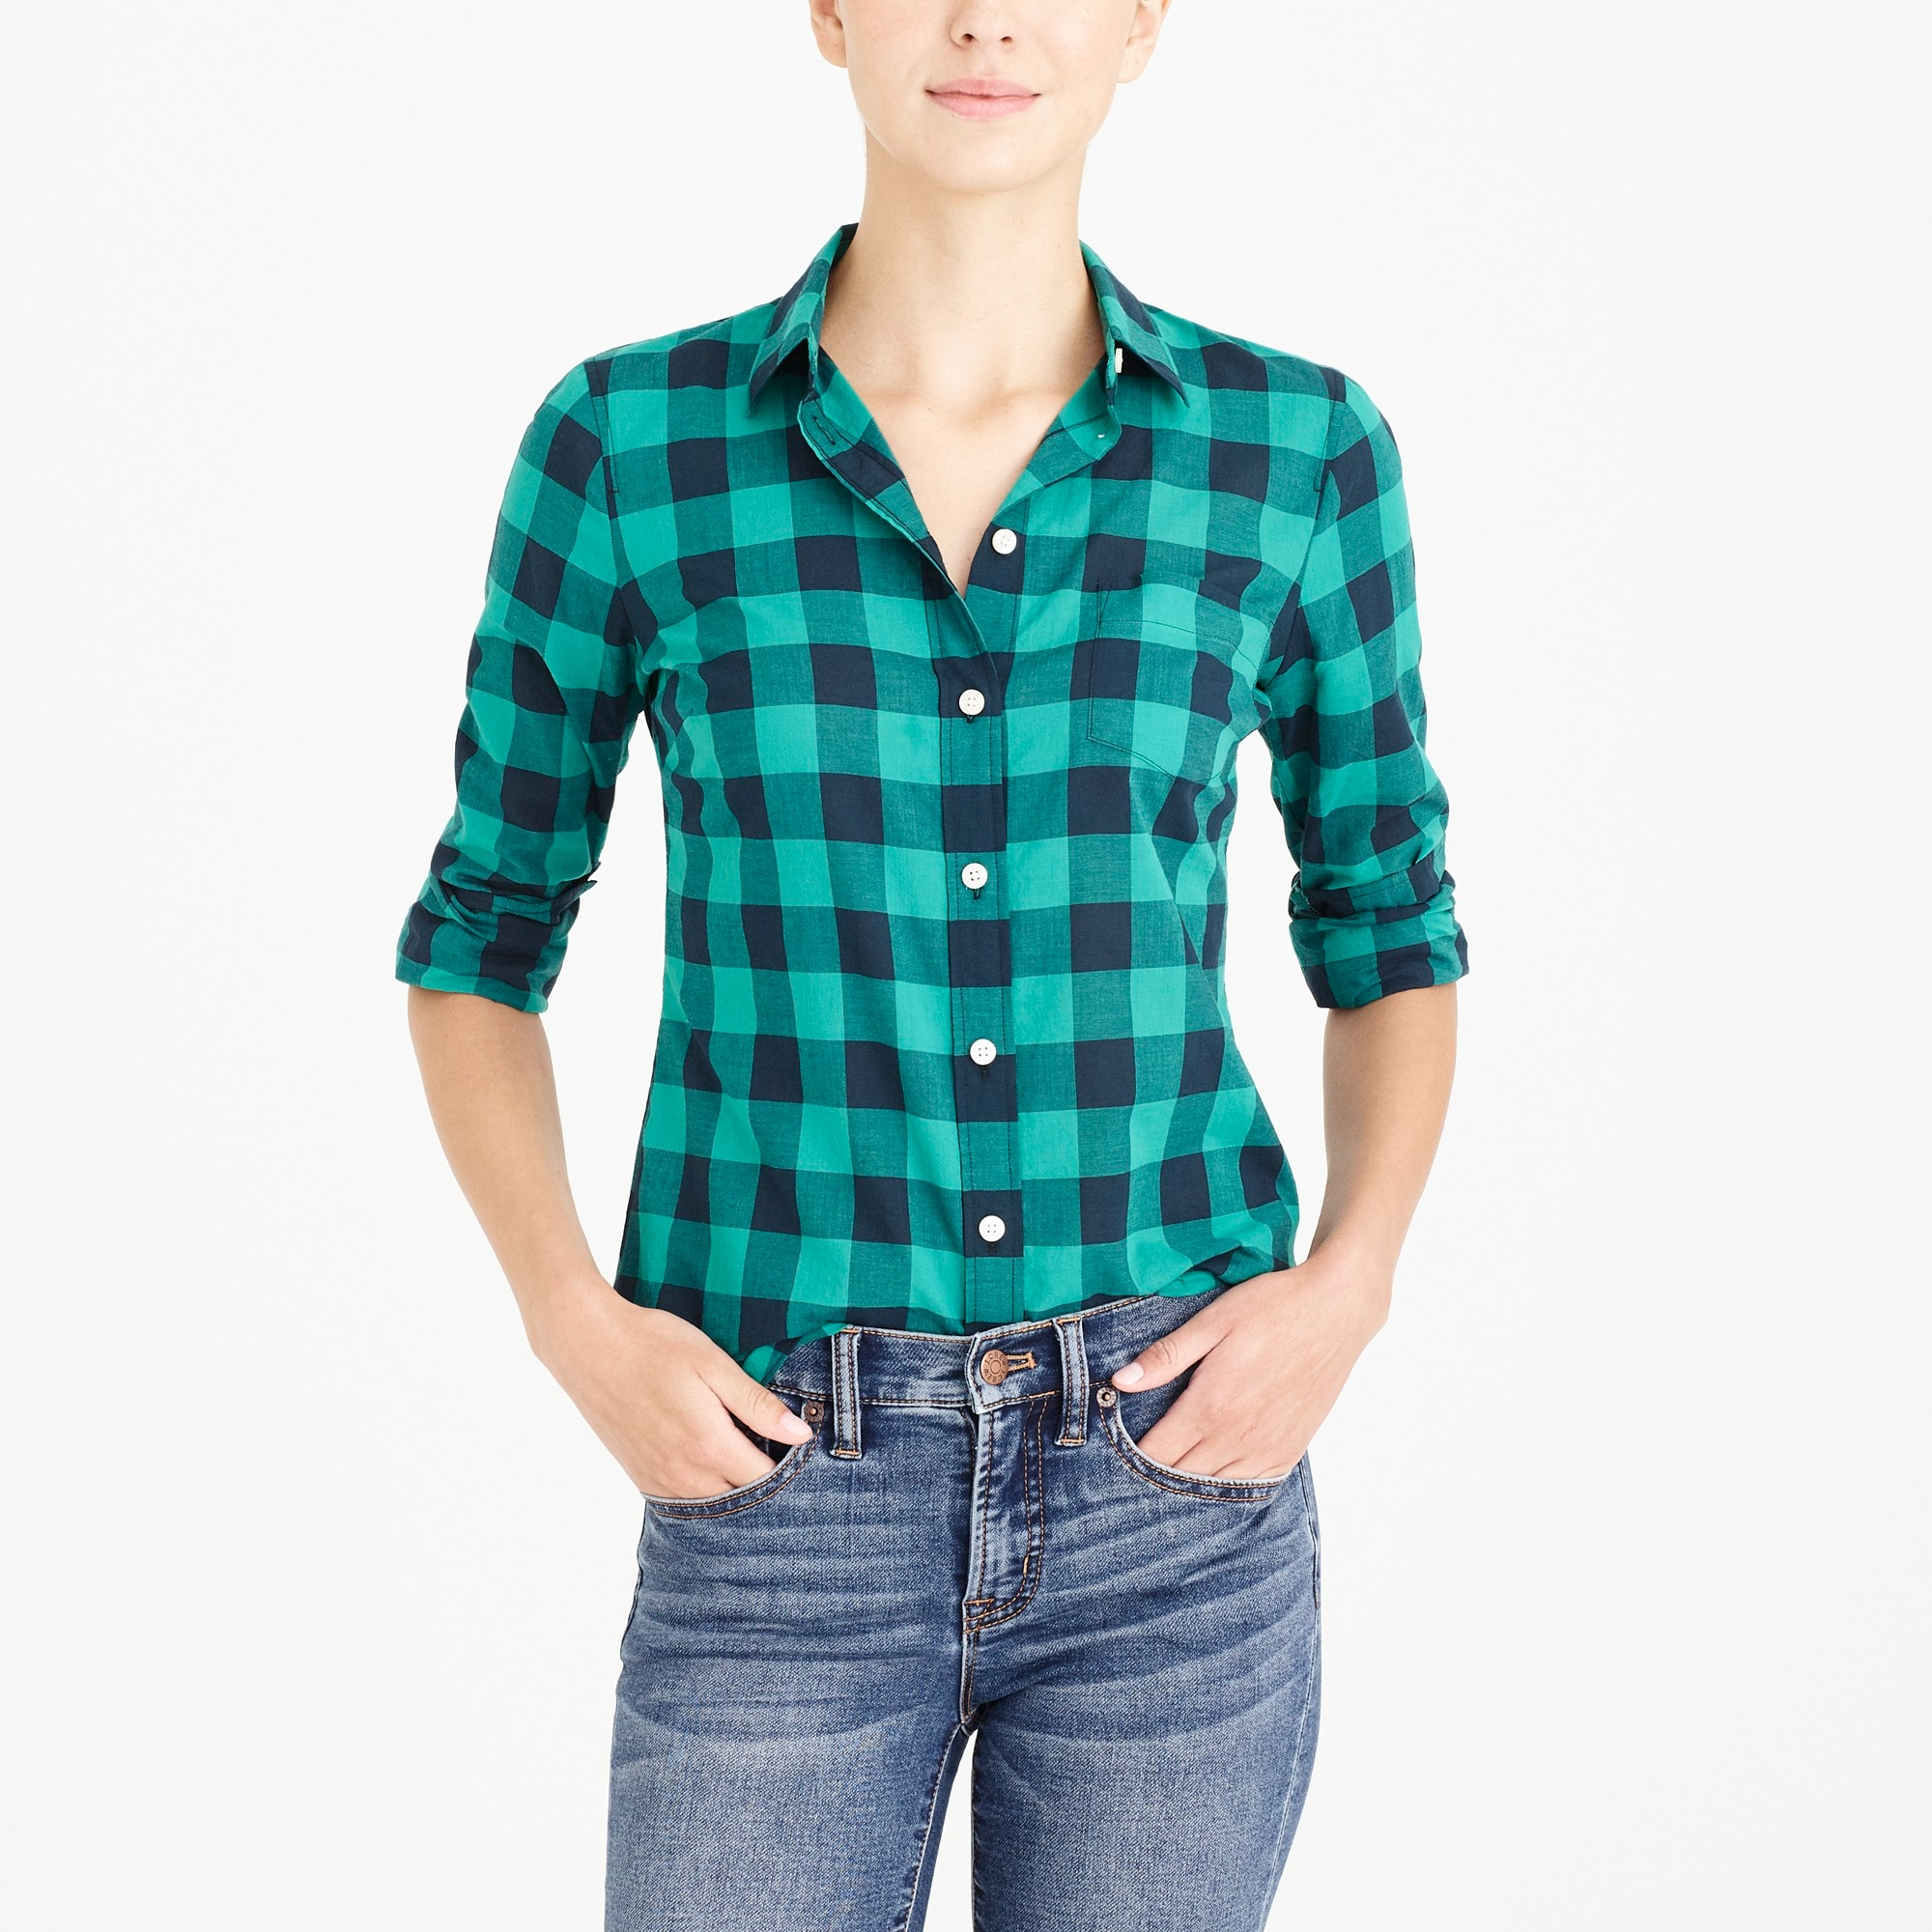 factory womens Plaid shirt